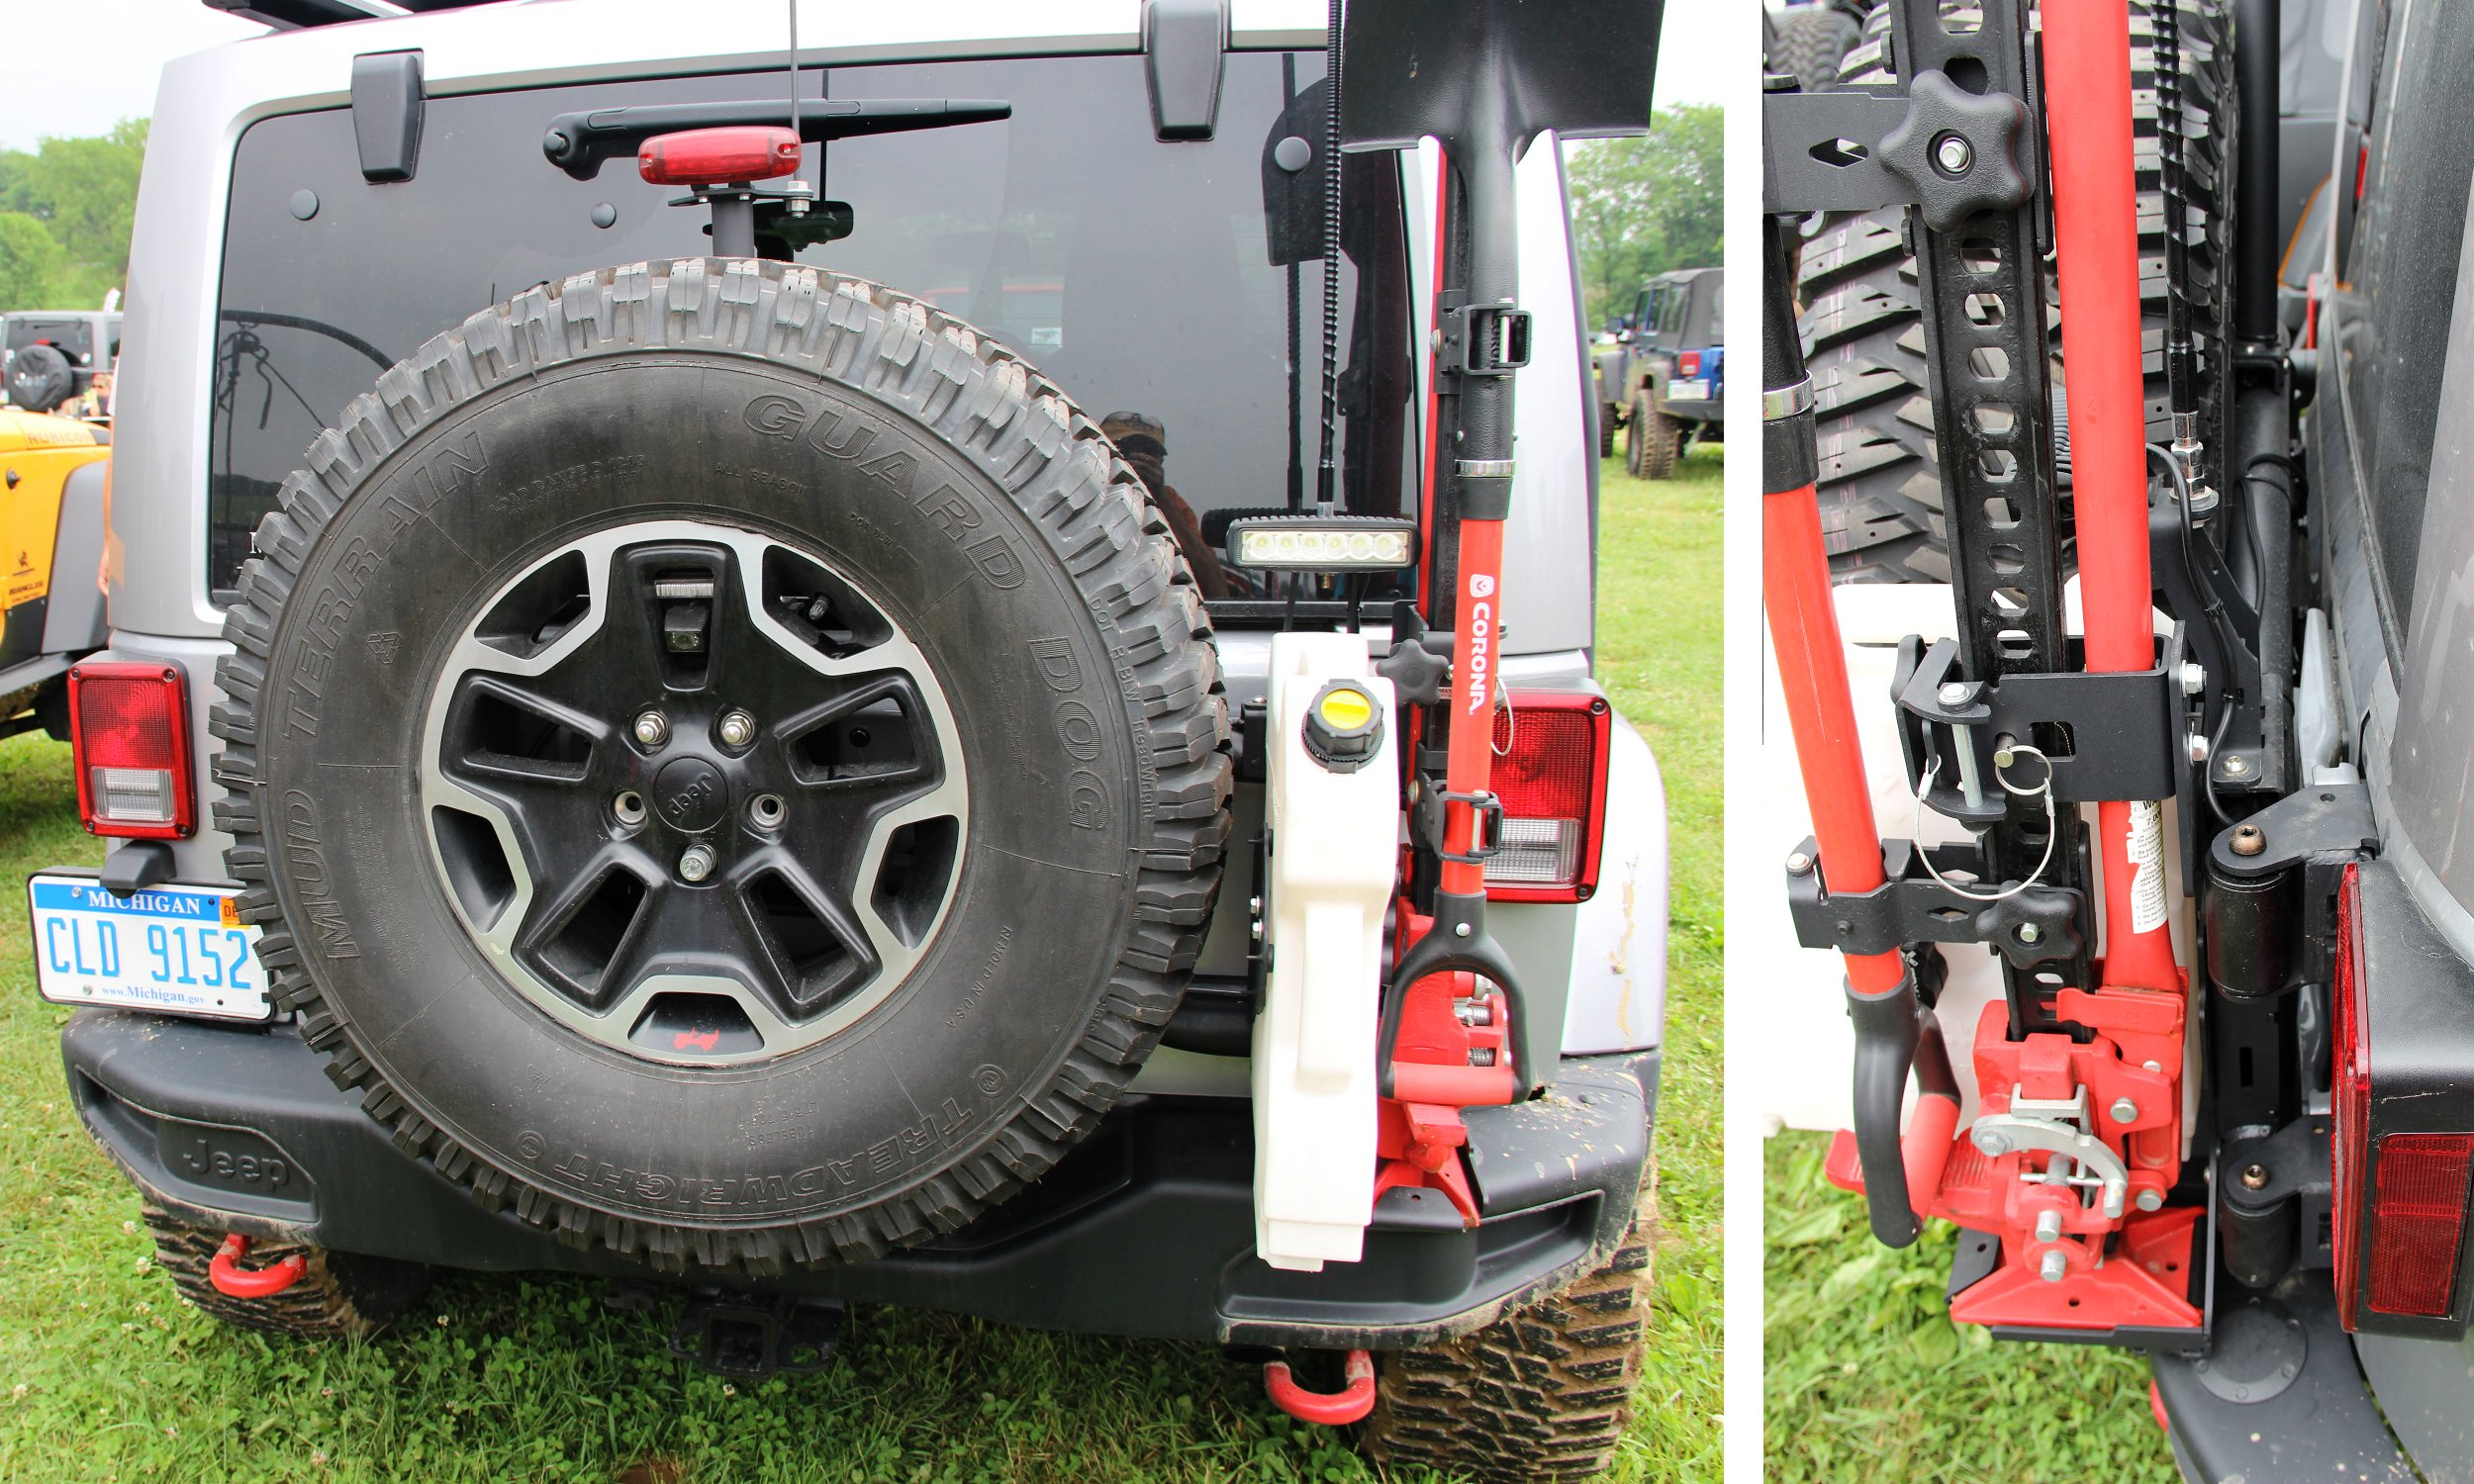 Maximus-3 Rubicon X at Bantam Jeep Heritage 2015